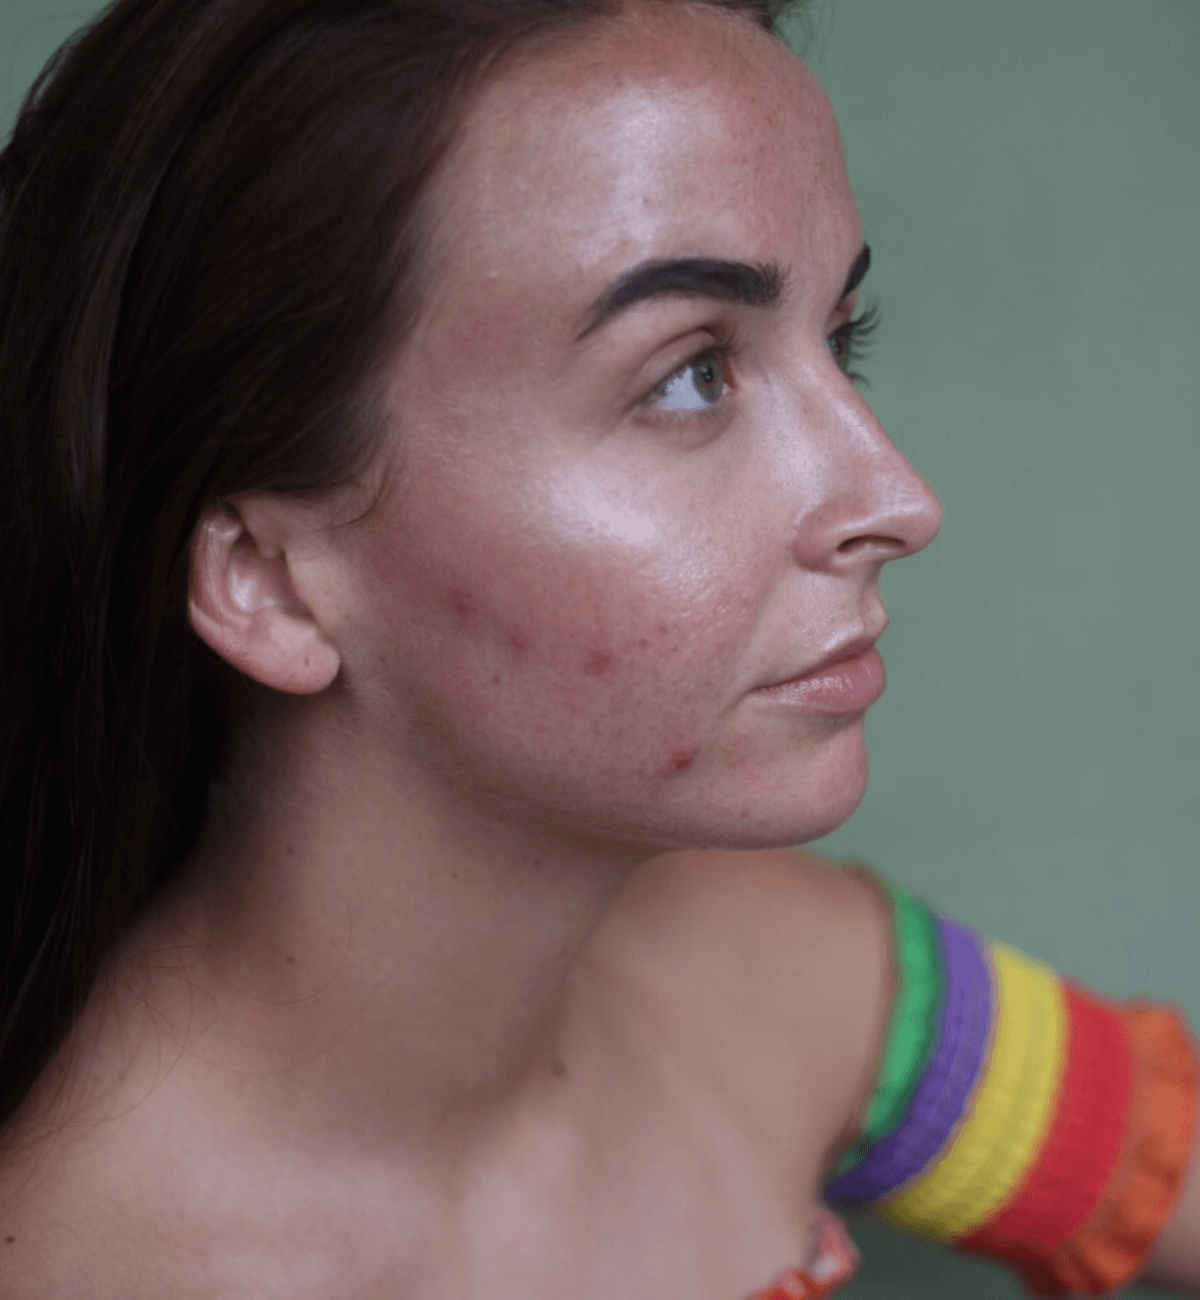 Girl with acne on cheeks whilst travelling